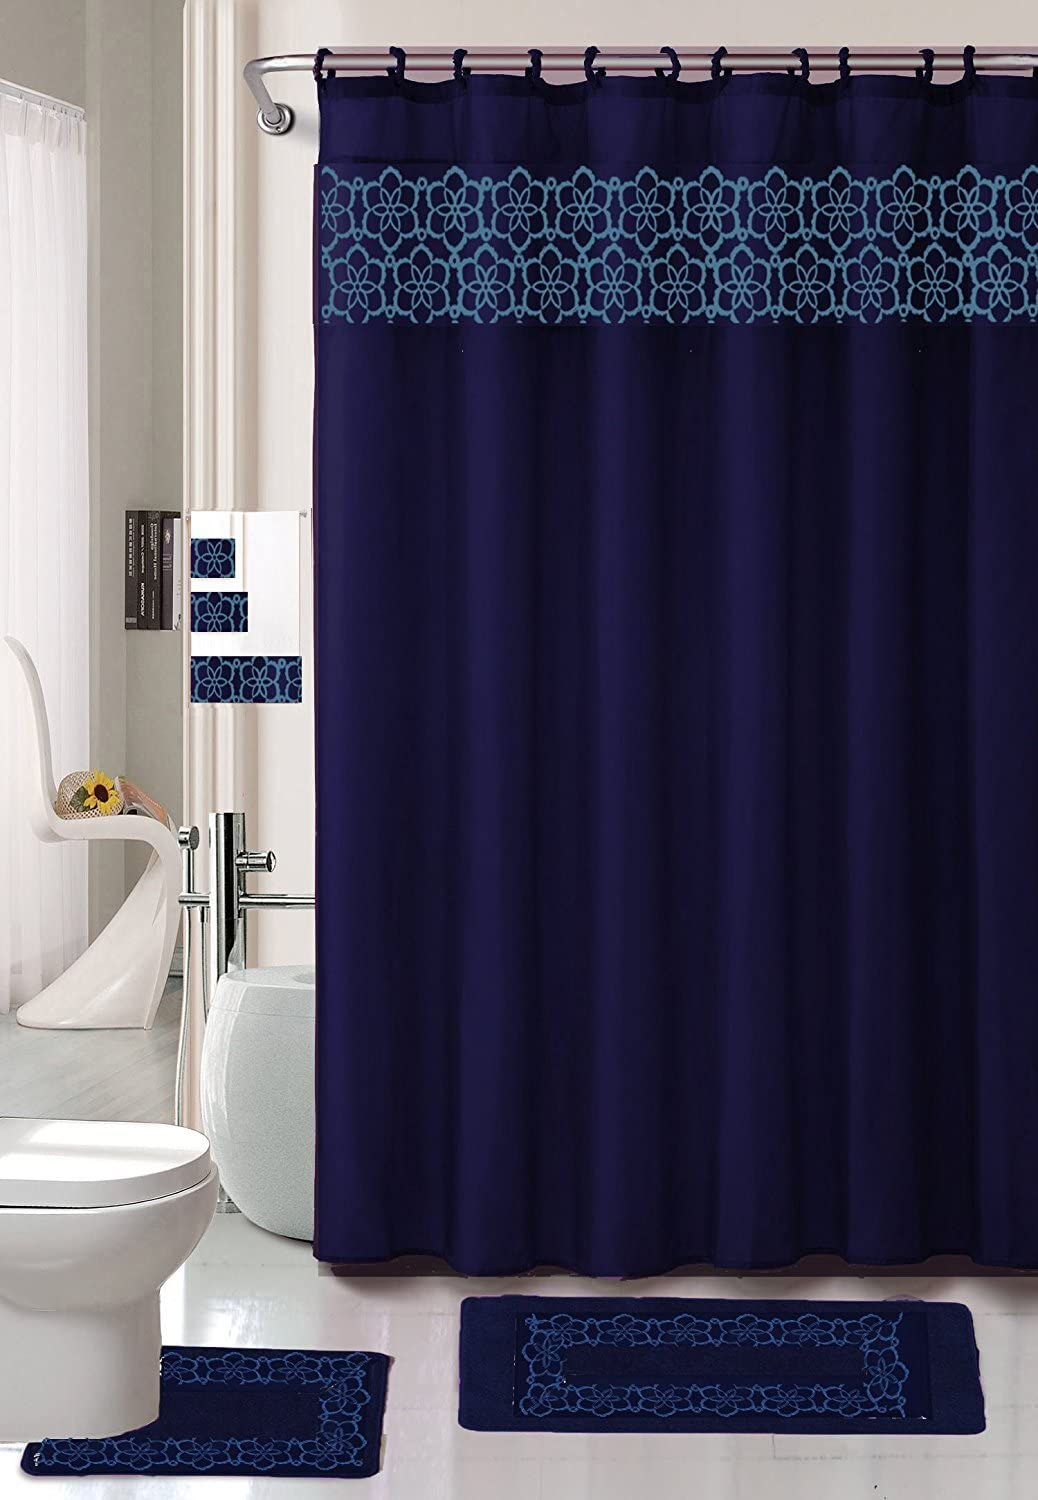 Embroidery 18-Piece Bathroom Accessory Set Floral Bath Mats Shower Curtain & Towels - Navy Blue